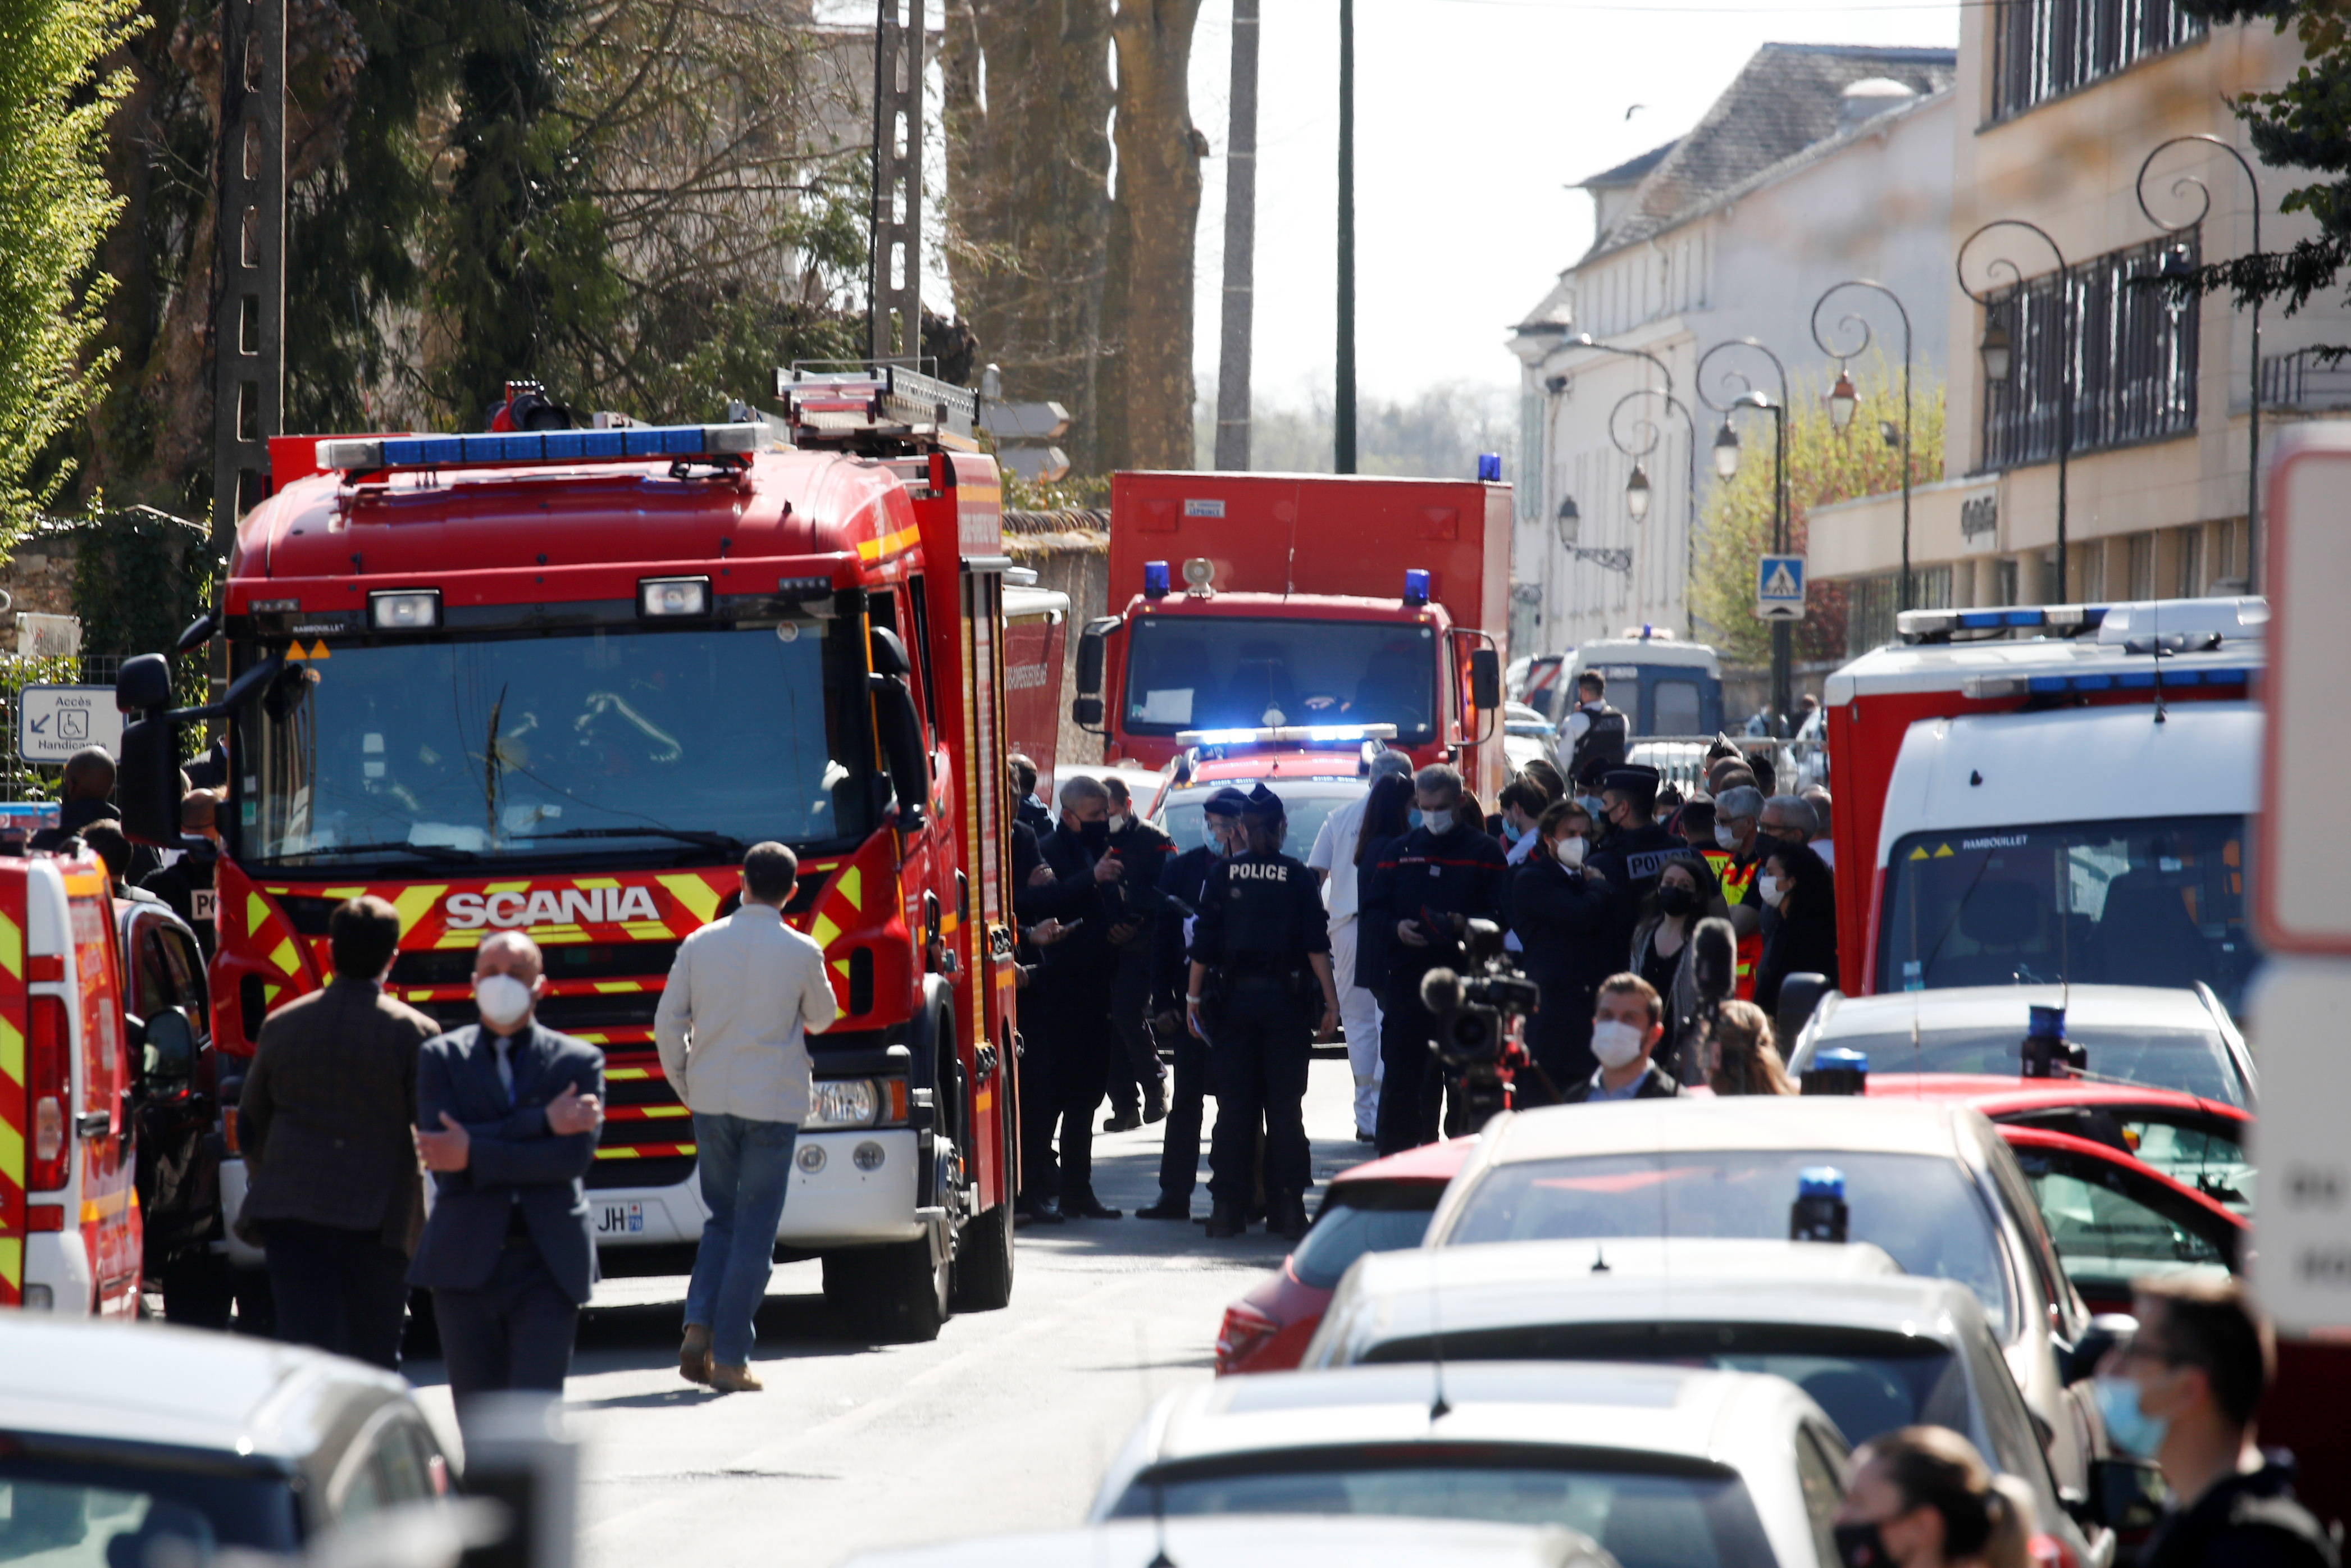 Police officers secure the area where an attacker stabbed a female police administrative worker, in Rambouillet, near Paris, France, April 23, 2021. REUTERS/Gonzalo Fuentes